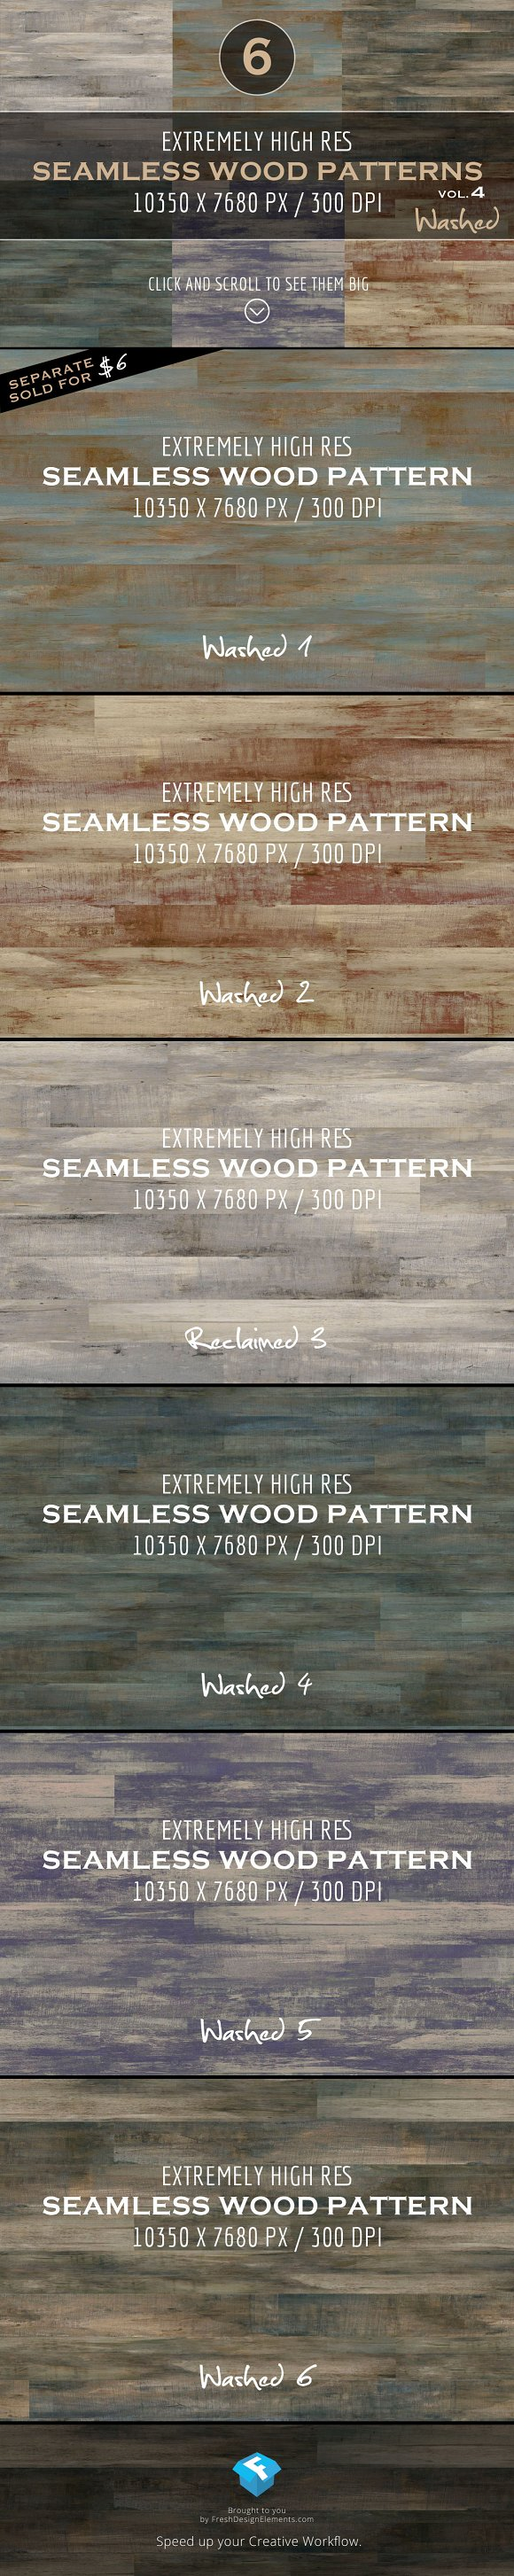 Extremely HR Wood Patterns vol. 4 - Patterns